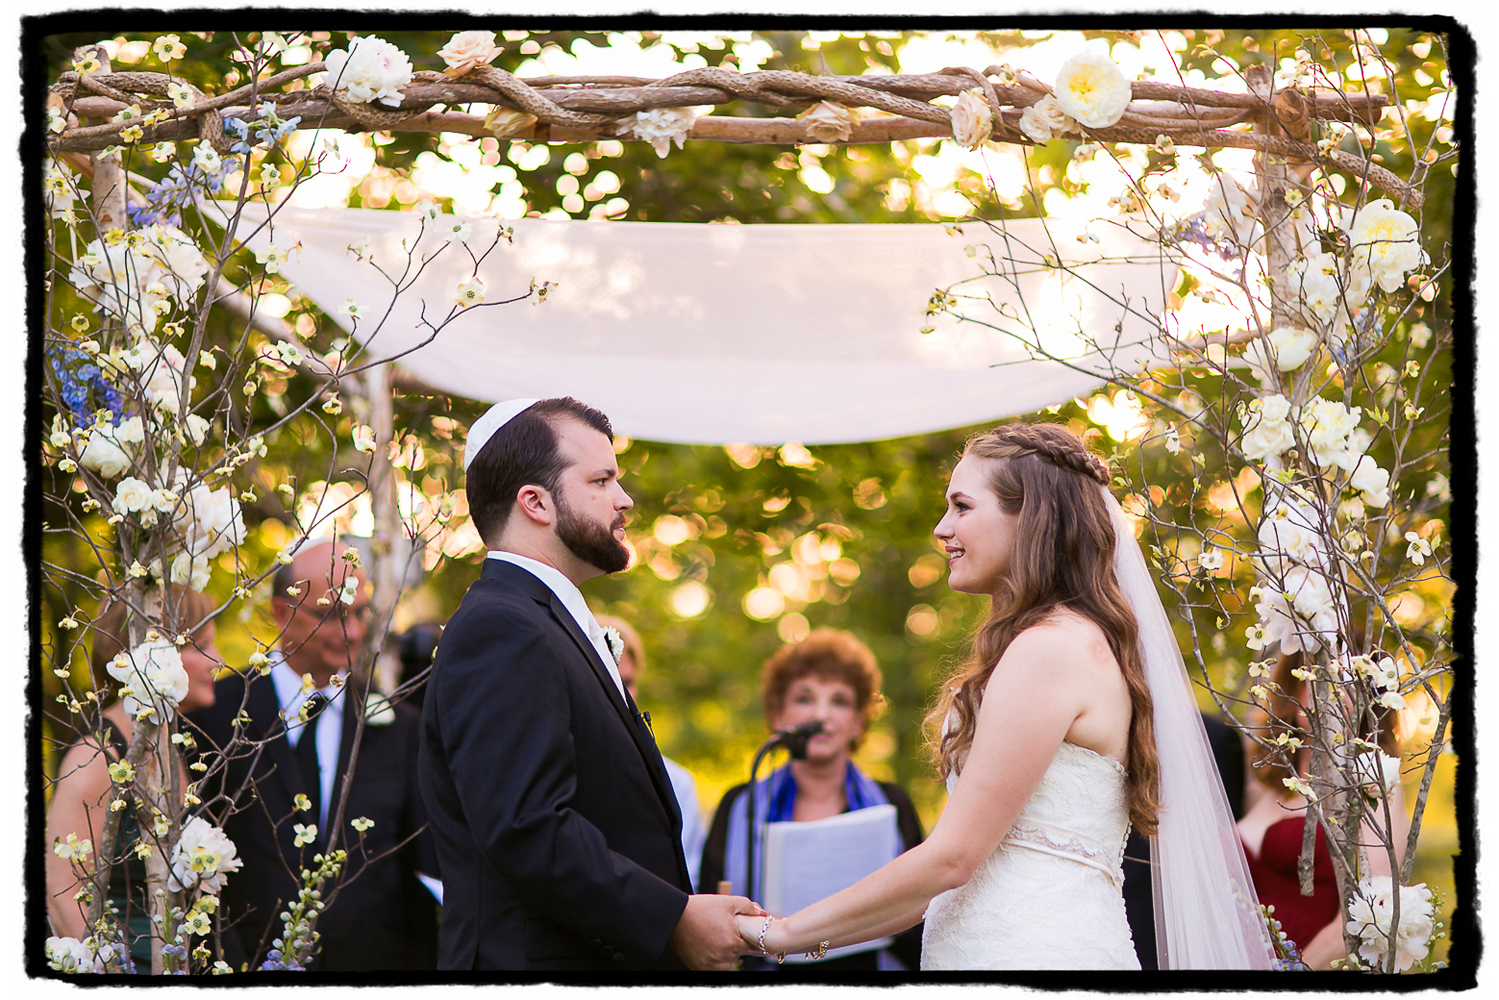 Alex & Will tie the knot under a floral Chuppah by Rebecca Sheperd at The Palm House at Brooklyn Botanic Garden.